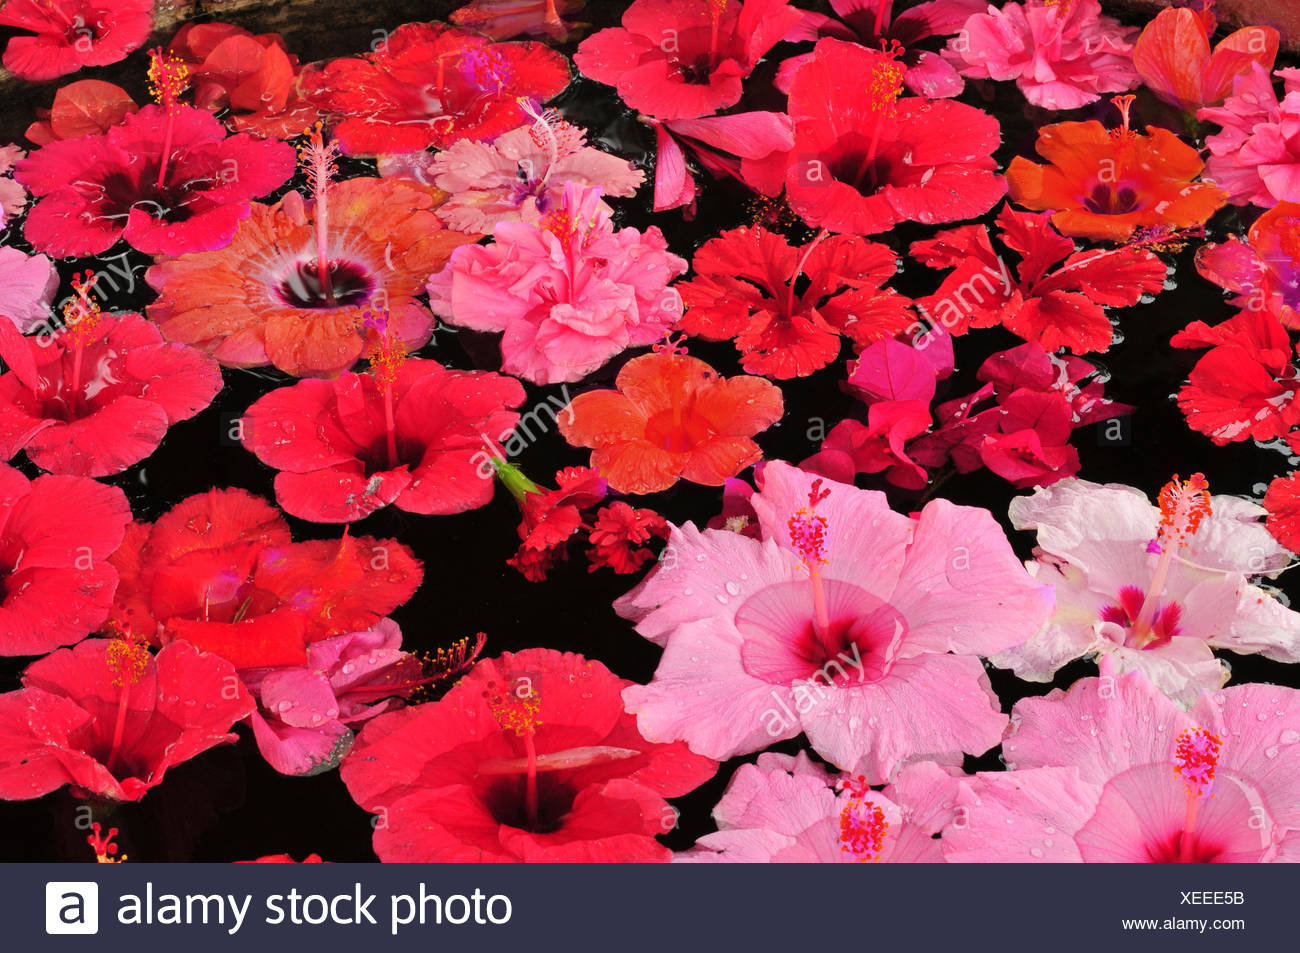 Colorful Hibiscus Flowers Floating On Water Stock Photo 284289527